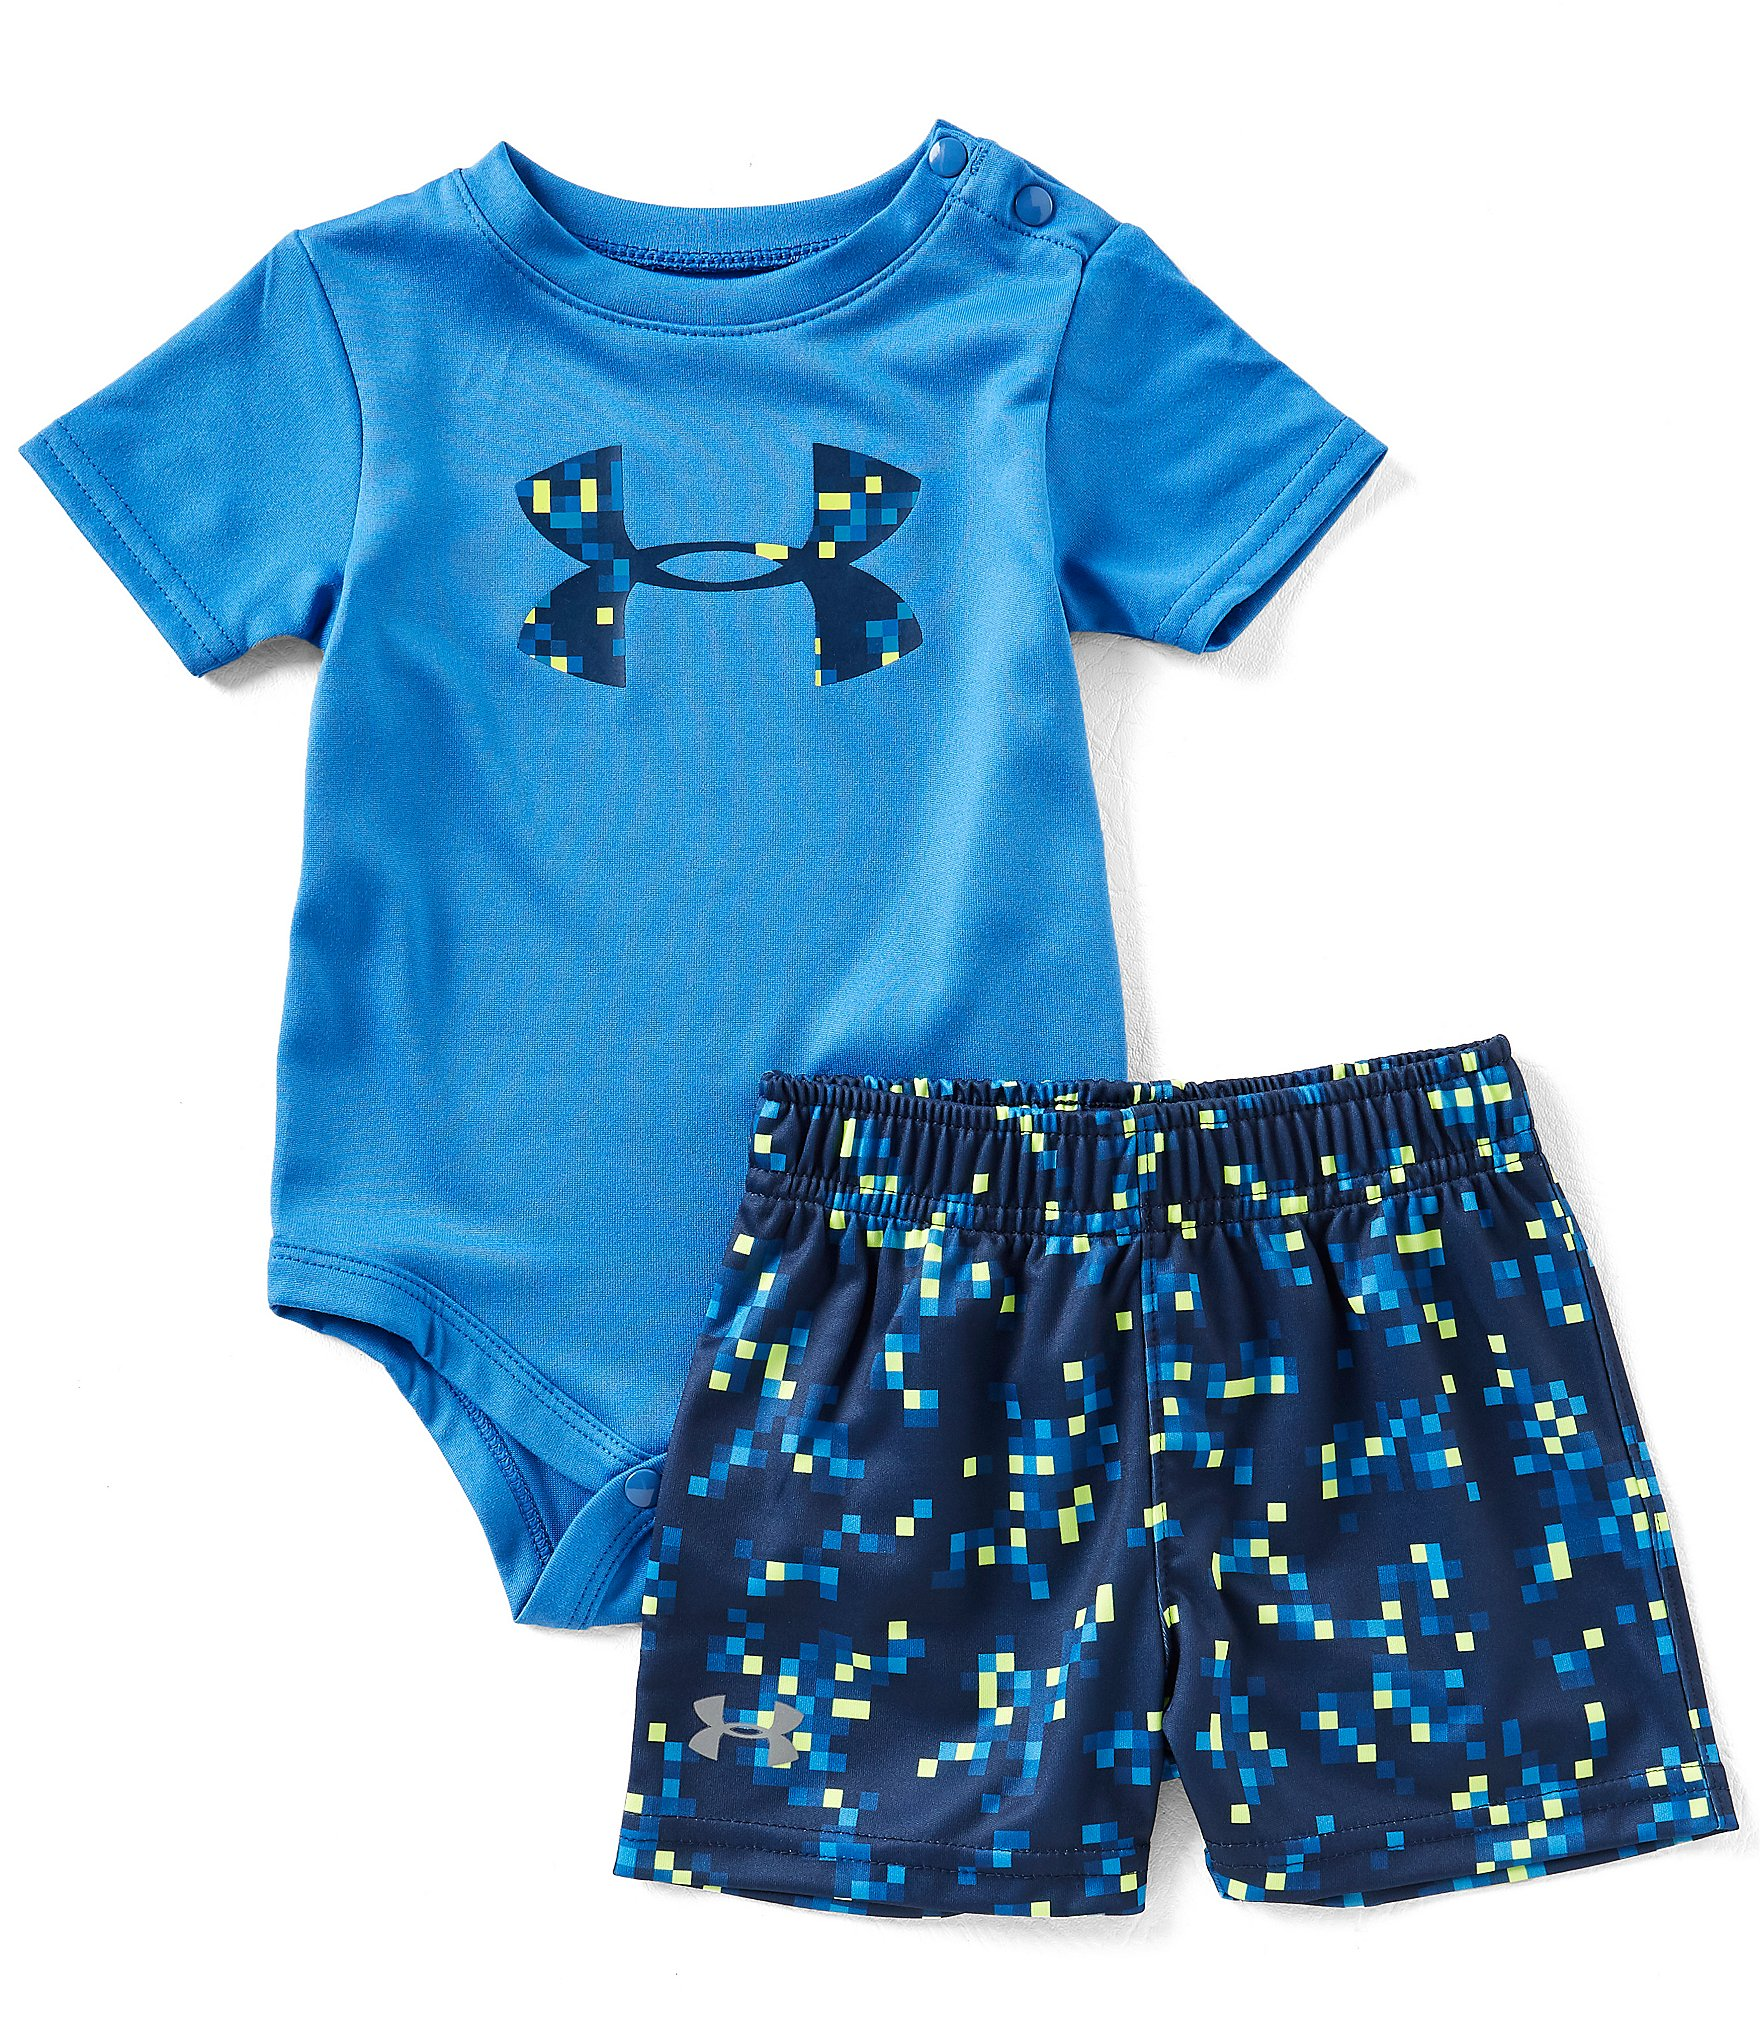 Under Armour Baby Clothes Clearance Newest and Cutest Baby